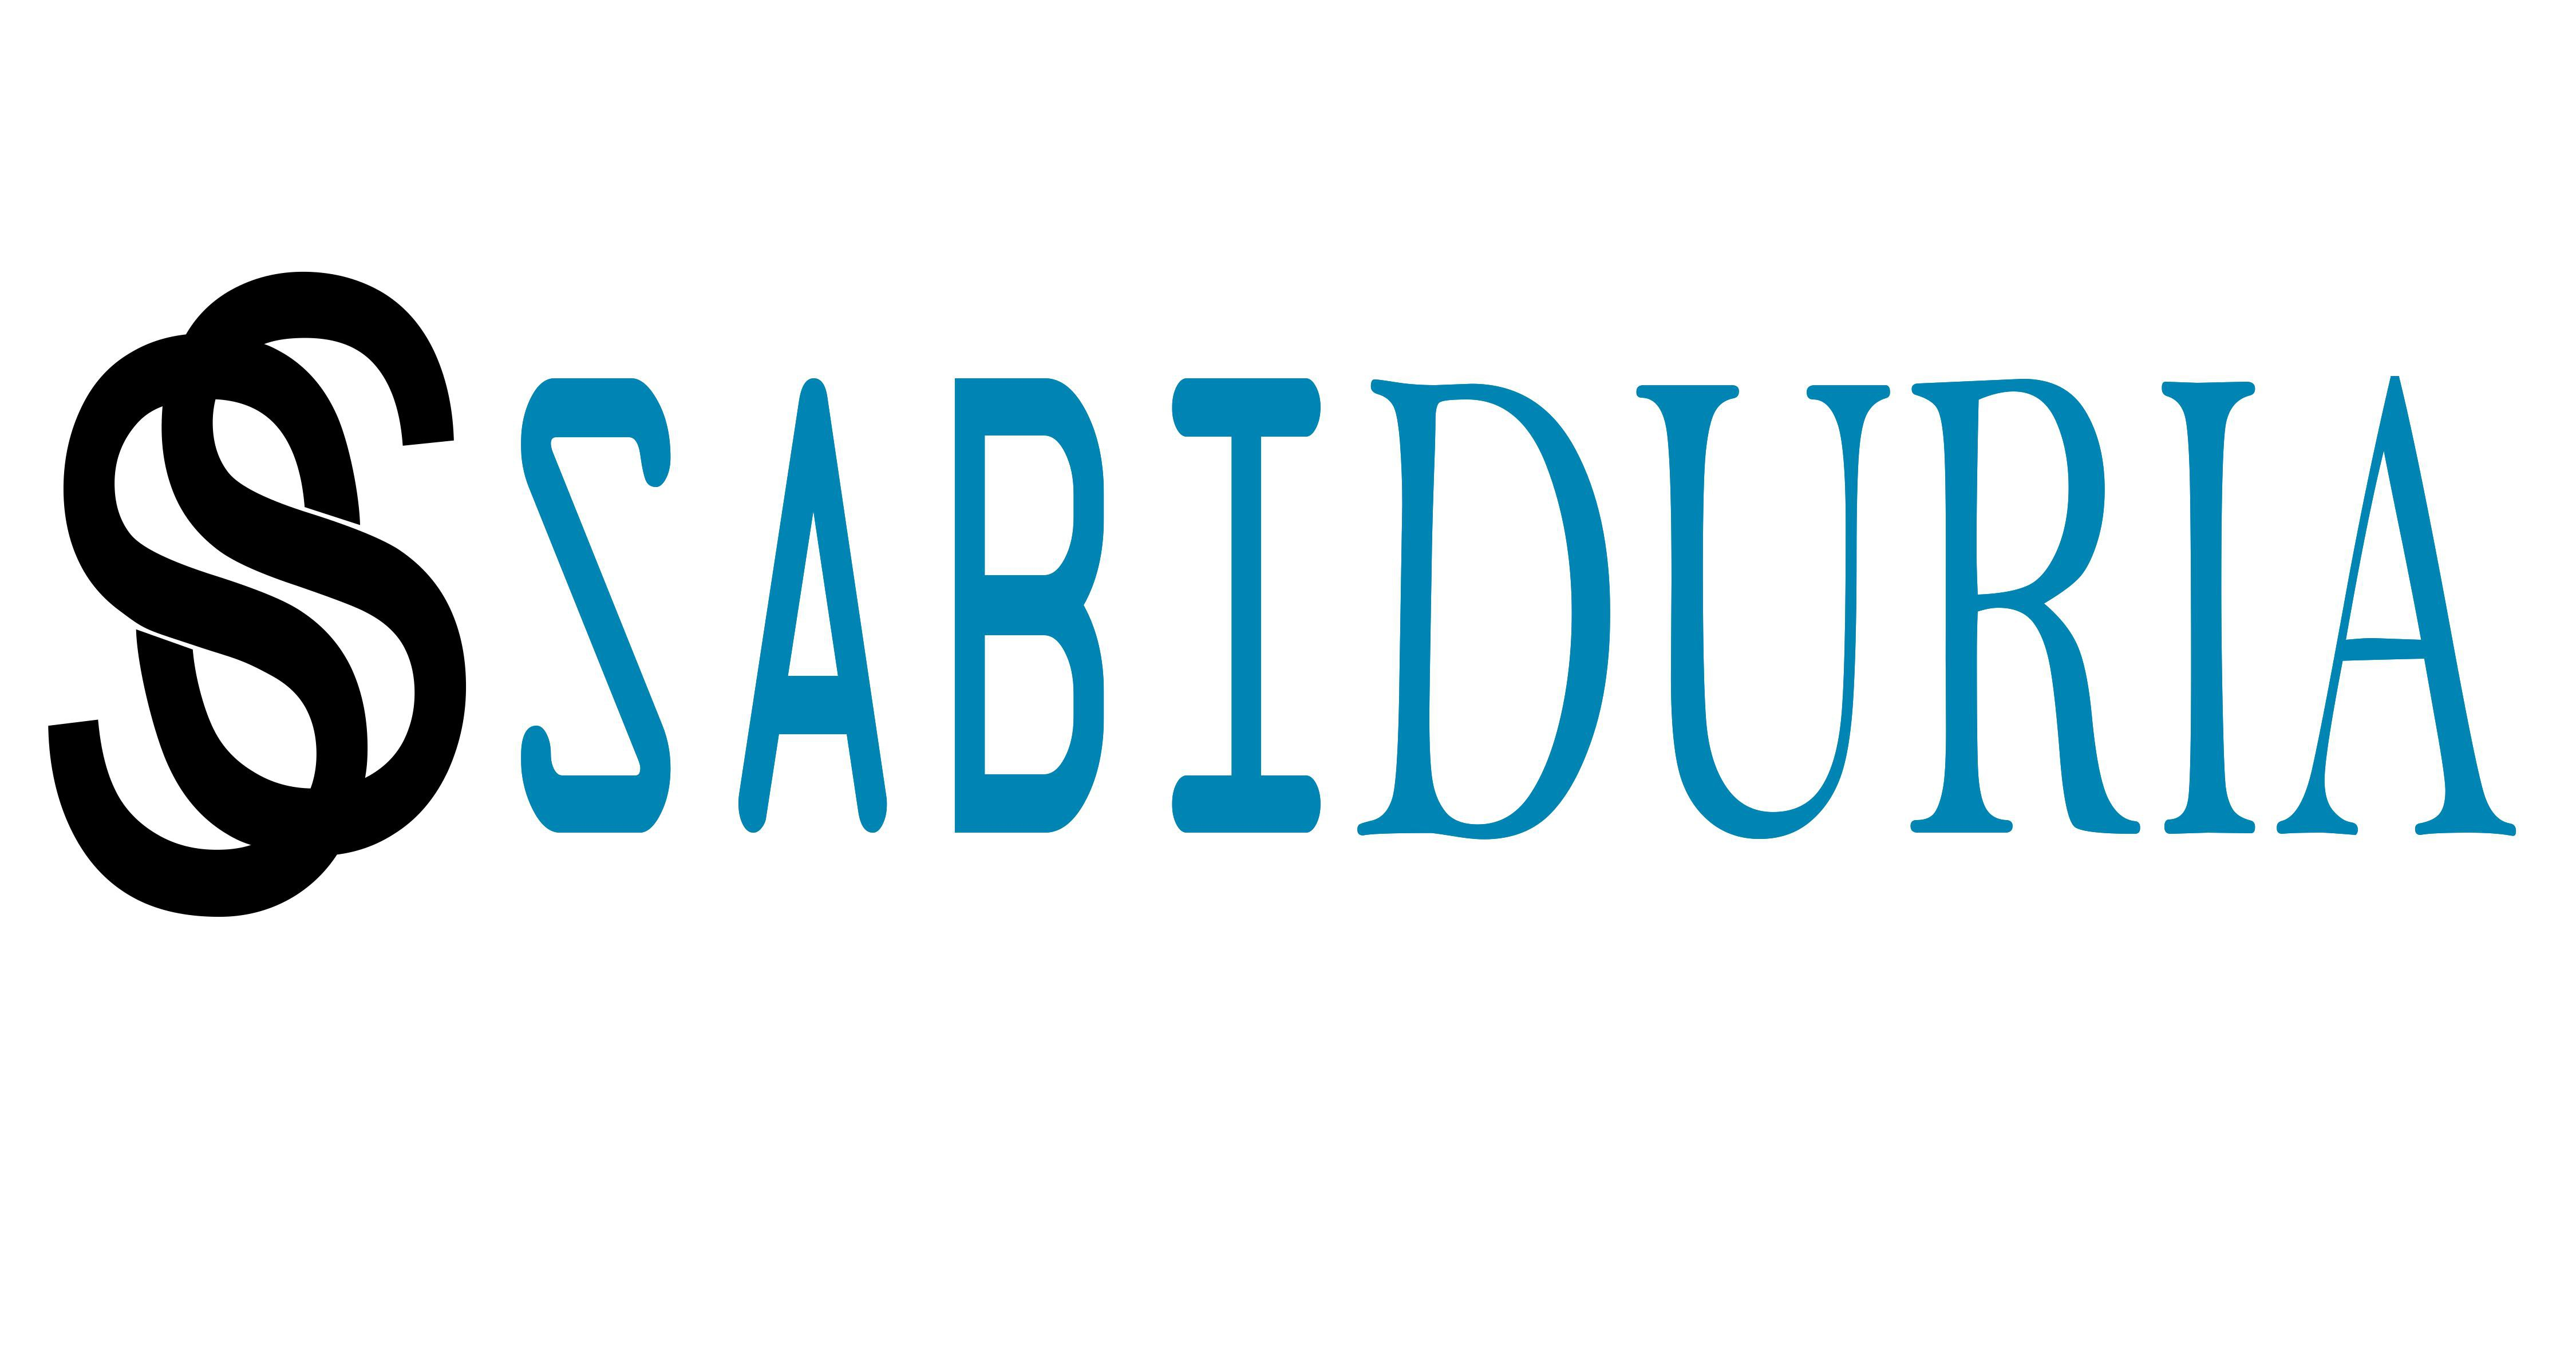 Second article to test the home page with largest title and smallest description to test the article-sabiduria